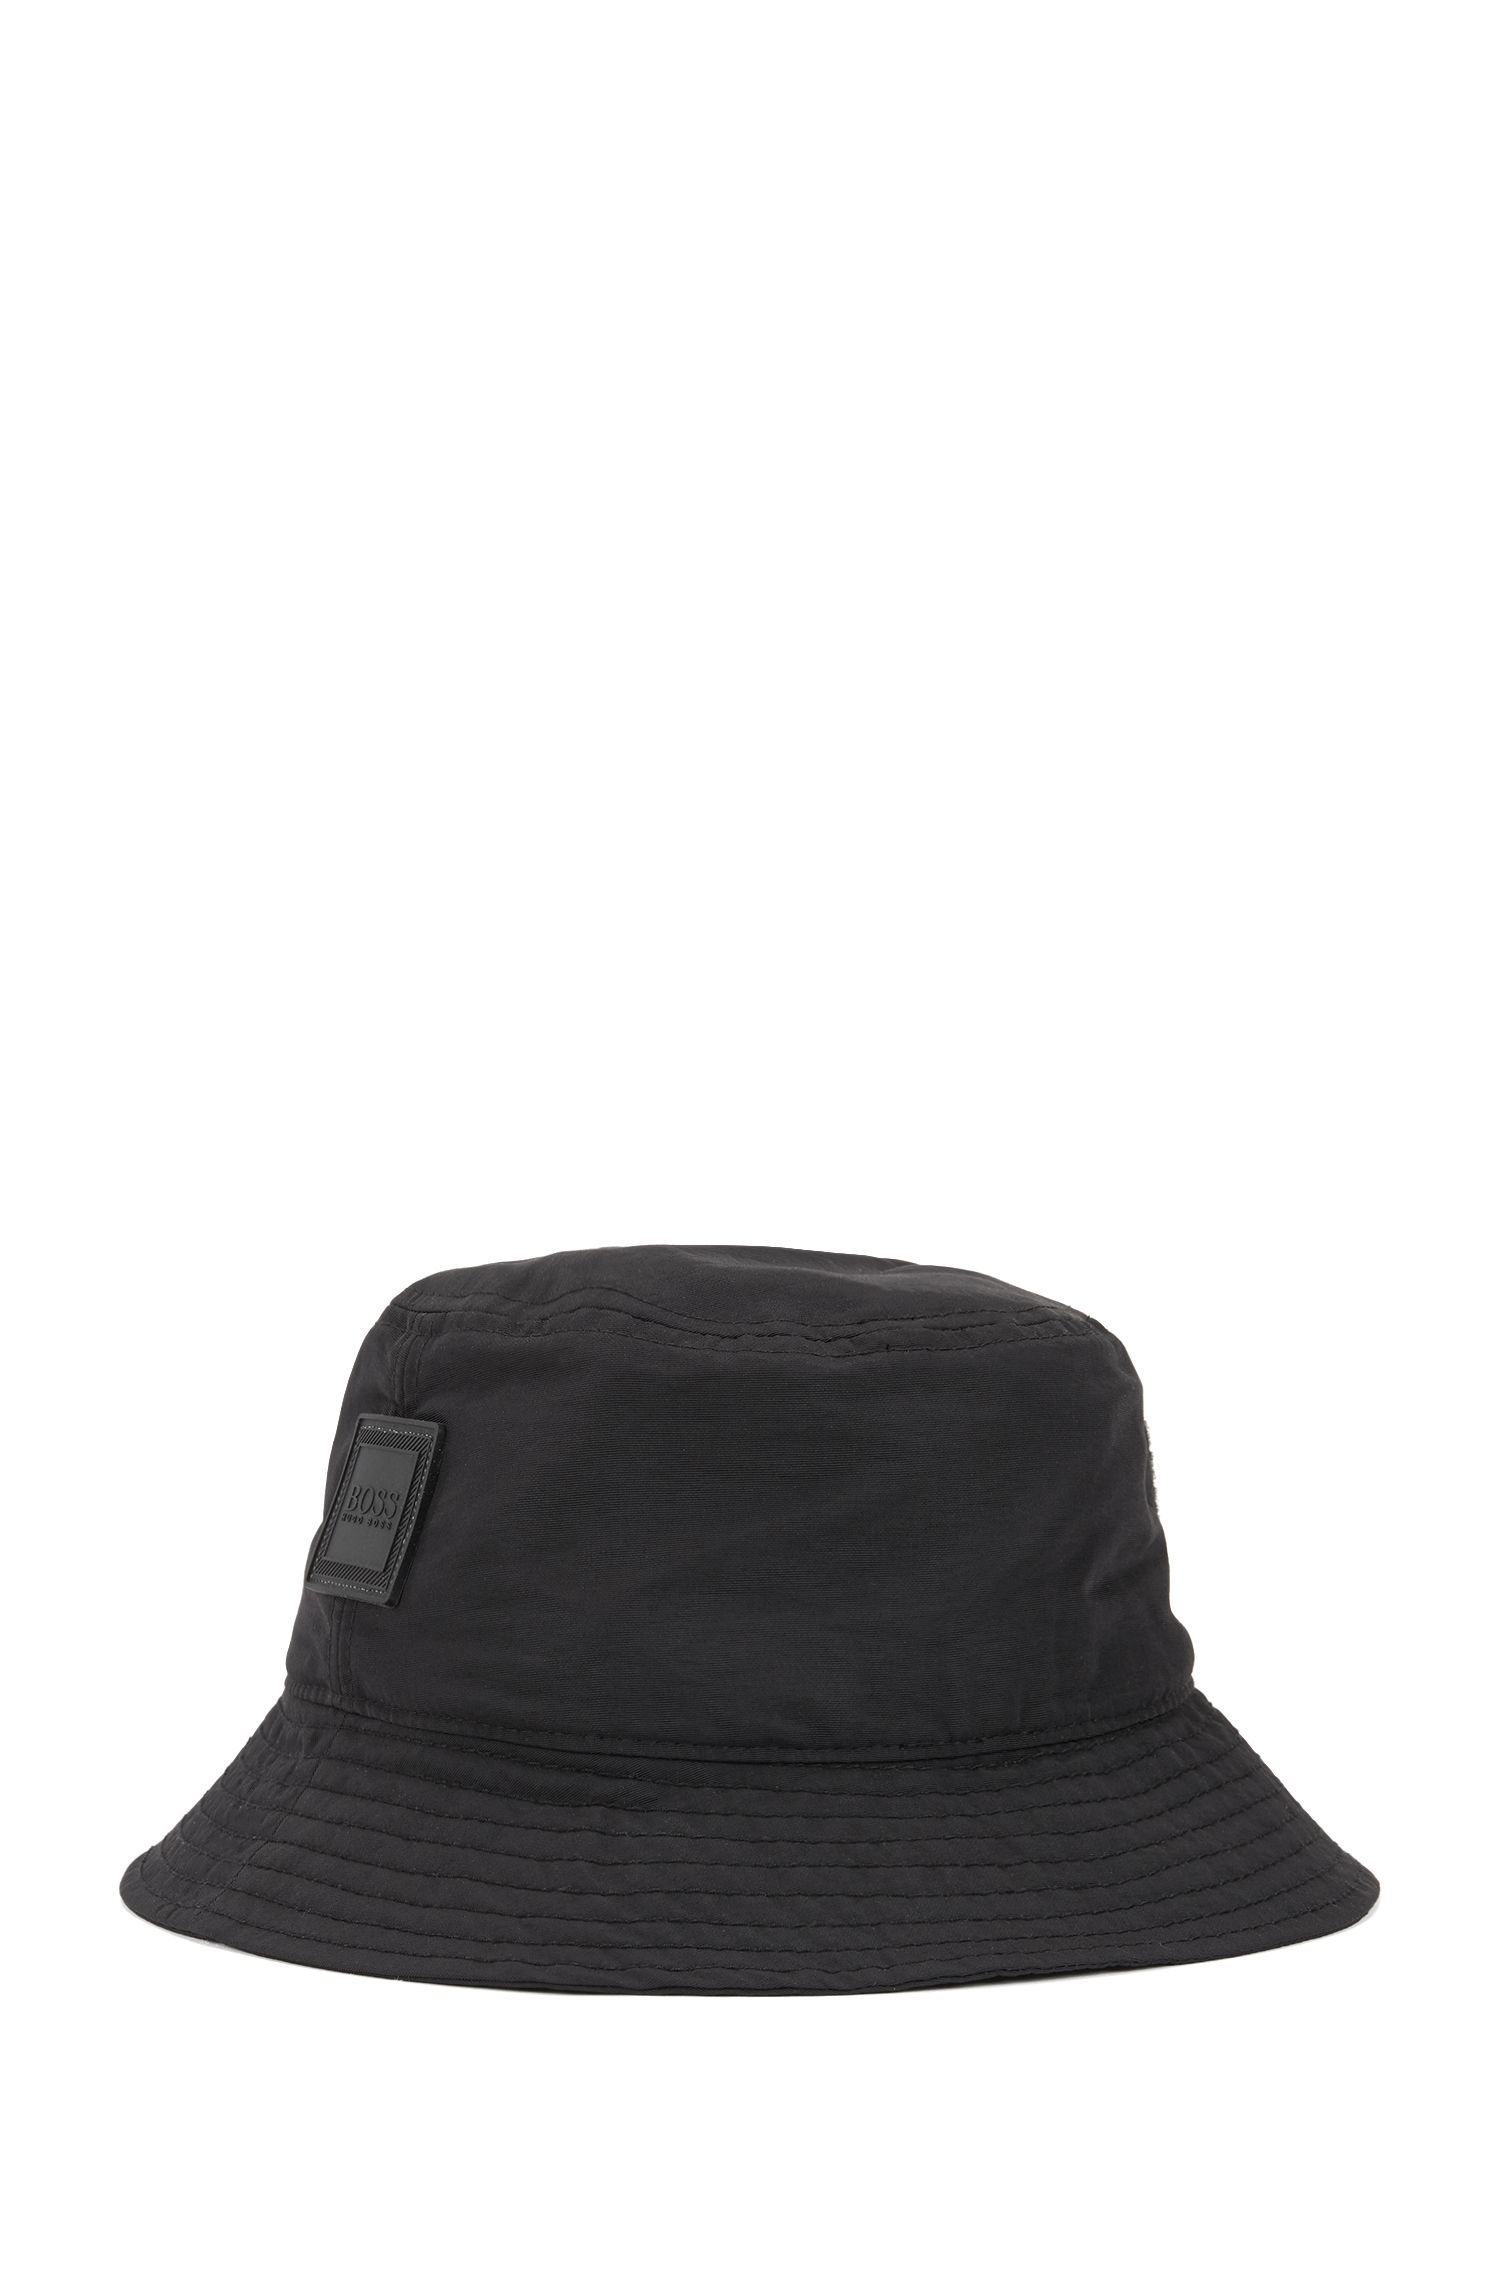 Bucket-style fisherman's hat in water-repellent technical fabric